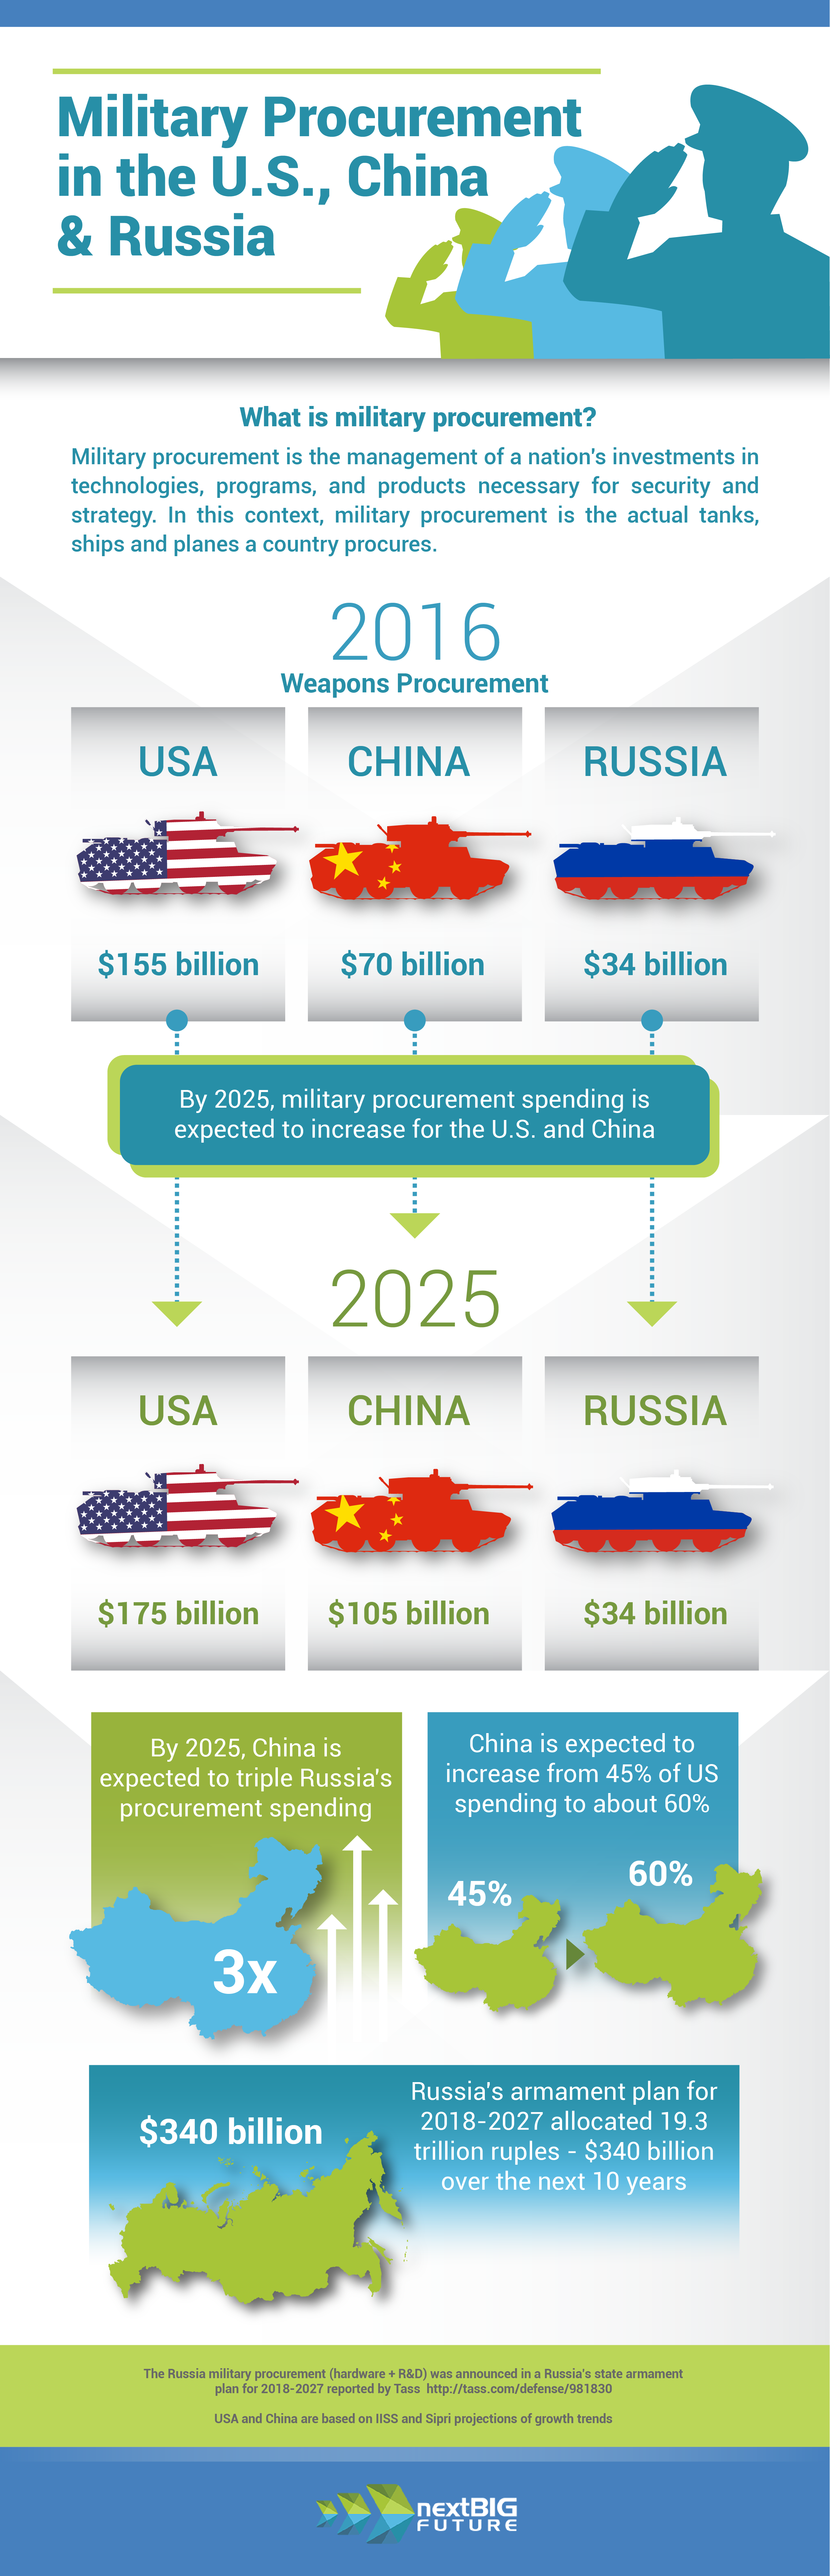 US vs China vs Russia: Who's Winning the Military Procurement Race - Infographic